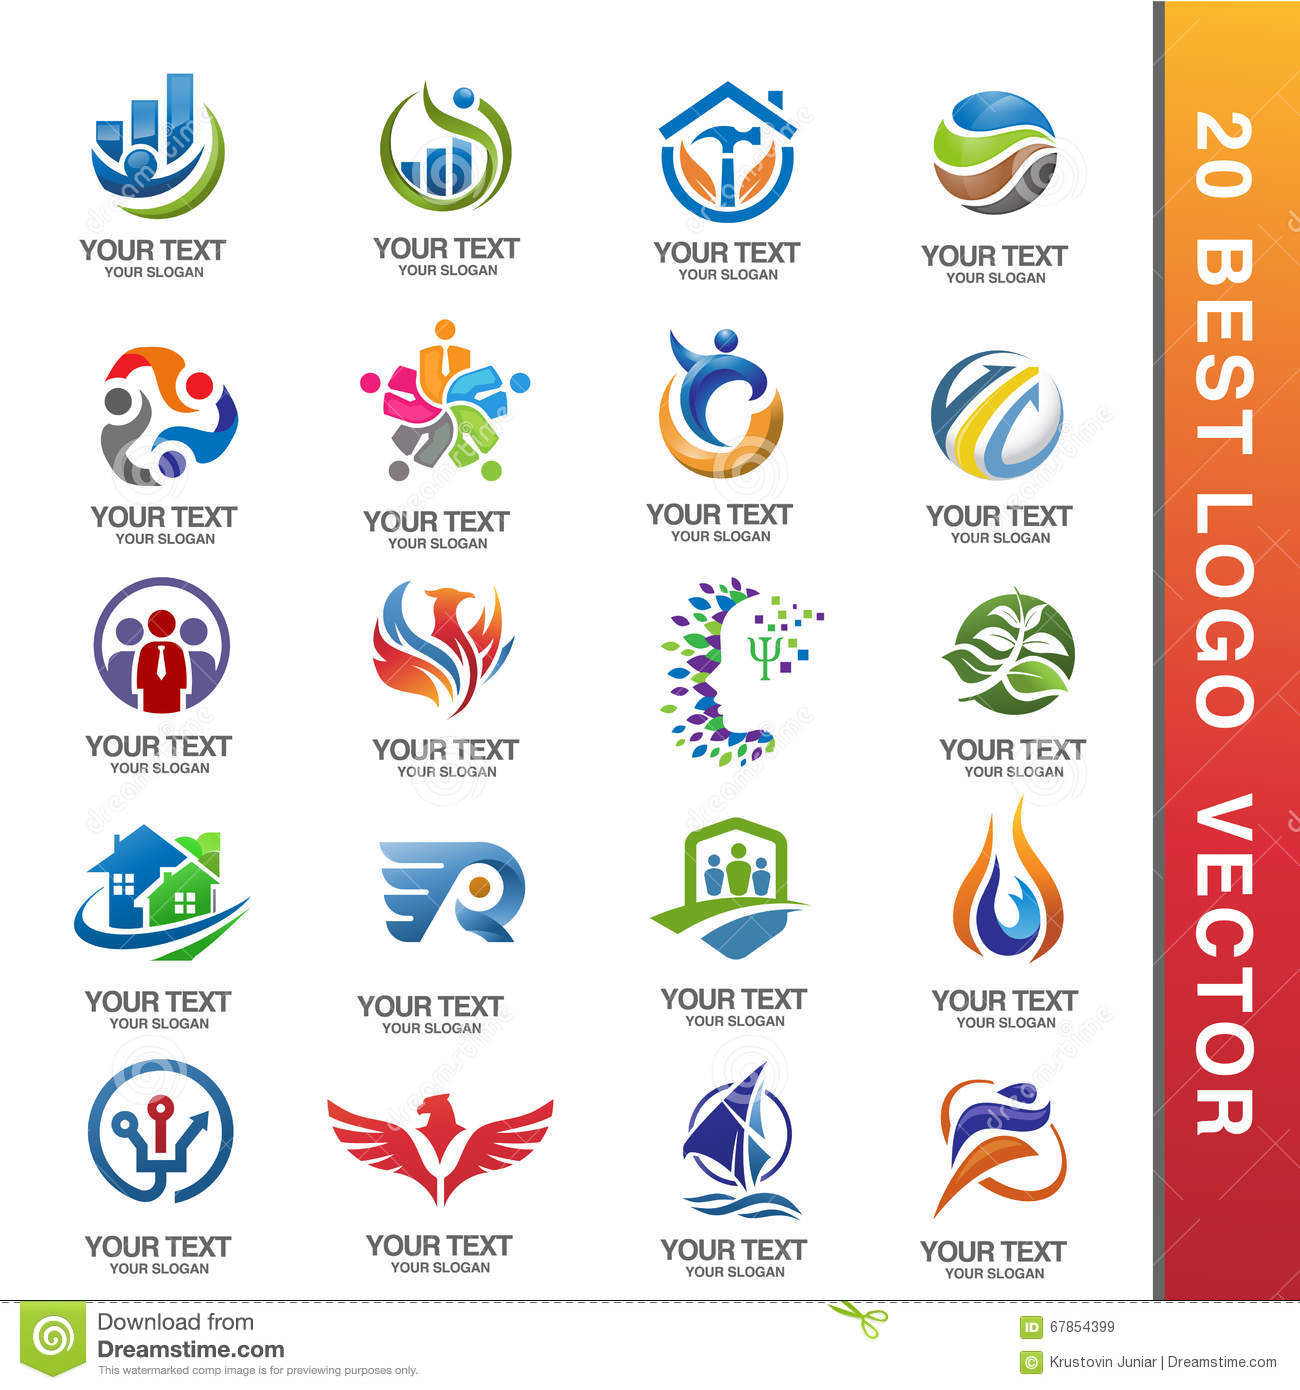 Large selection of high-quality free logos. Customize a logo for your company easily with our logo maker. Free logo design in minutes!/5().